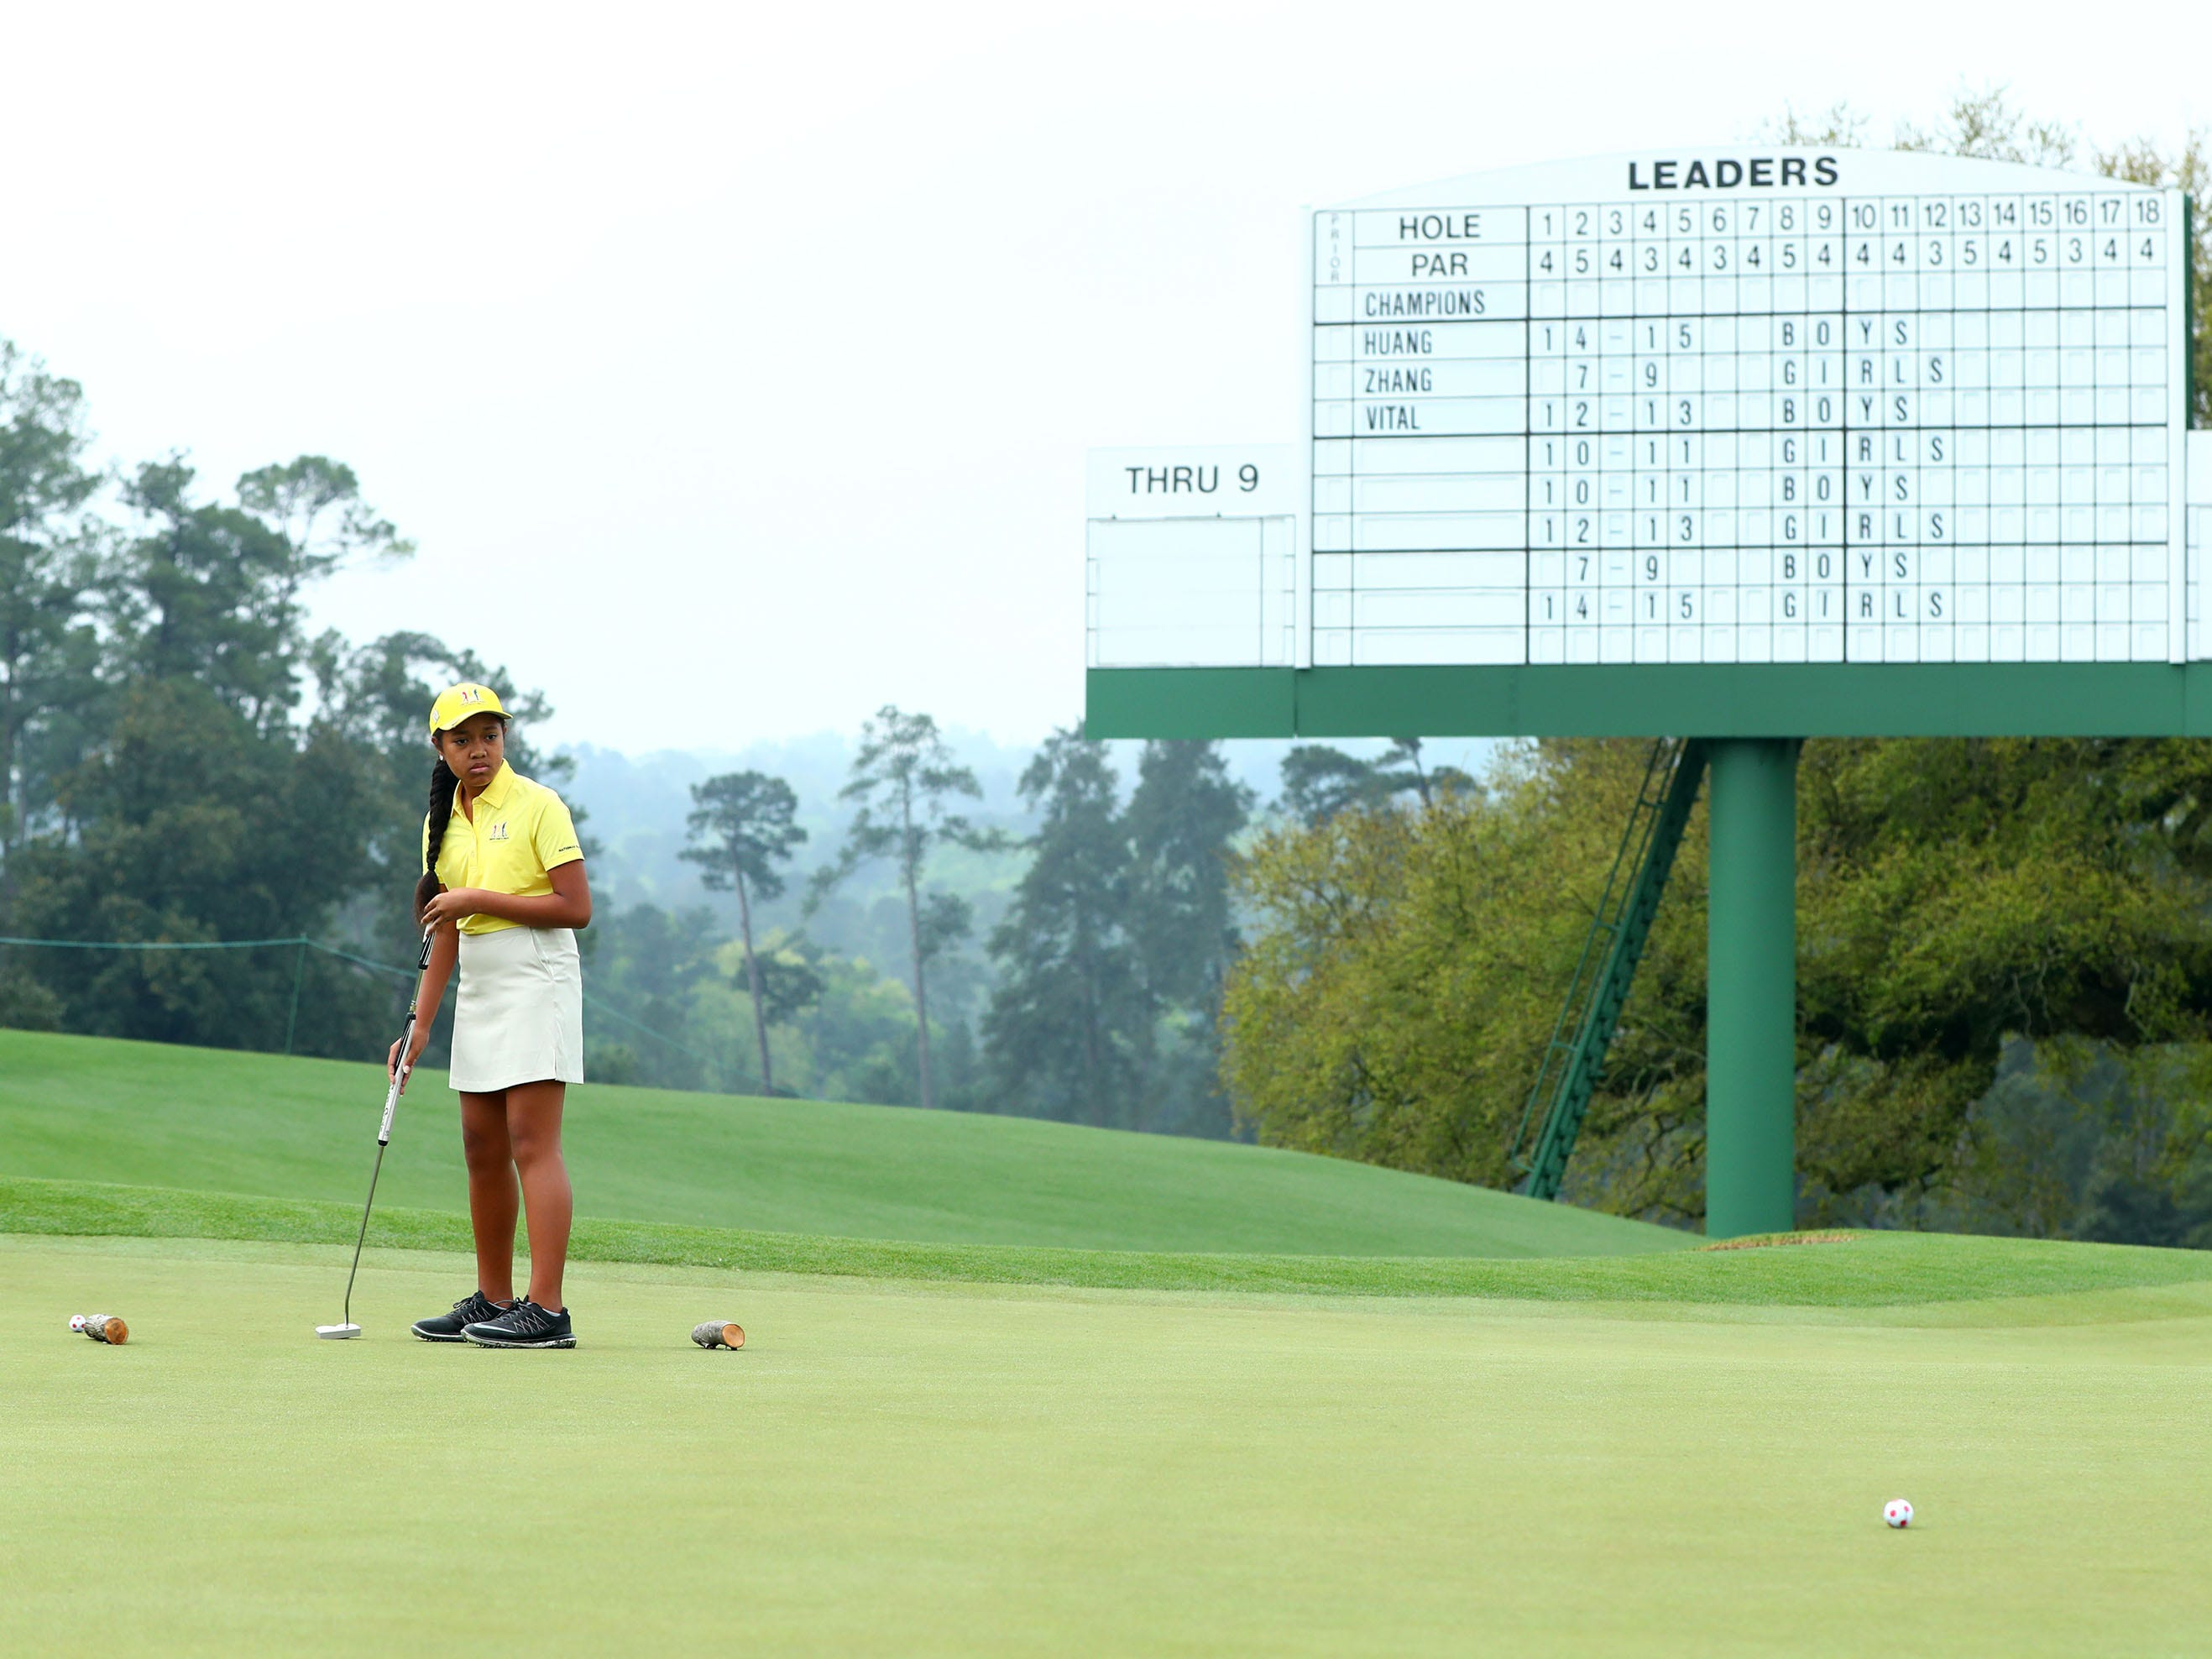 Apr 7, 2019: Alexis Vakasiuola of San Tan Valley, Ariz. in the girls 7-9 age group, watches her putt during the finals of the Drive, Chip and Putt competition at Augusta National Golf Club.